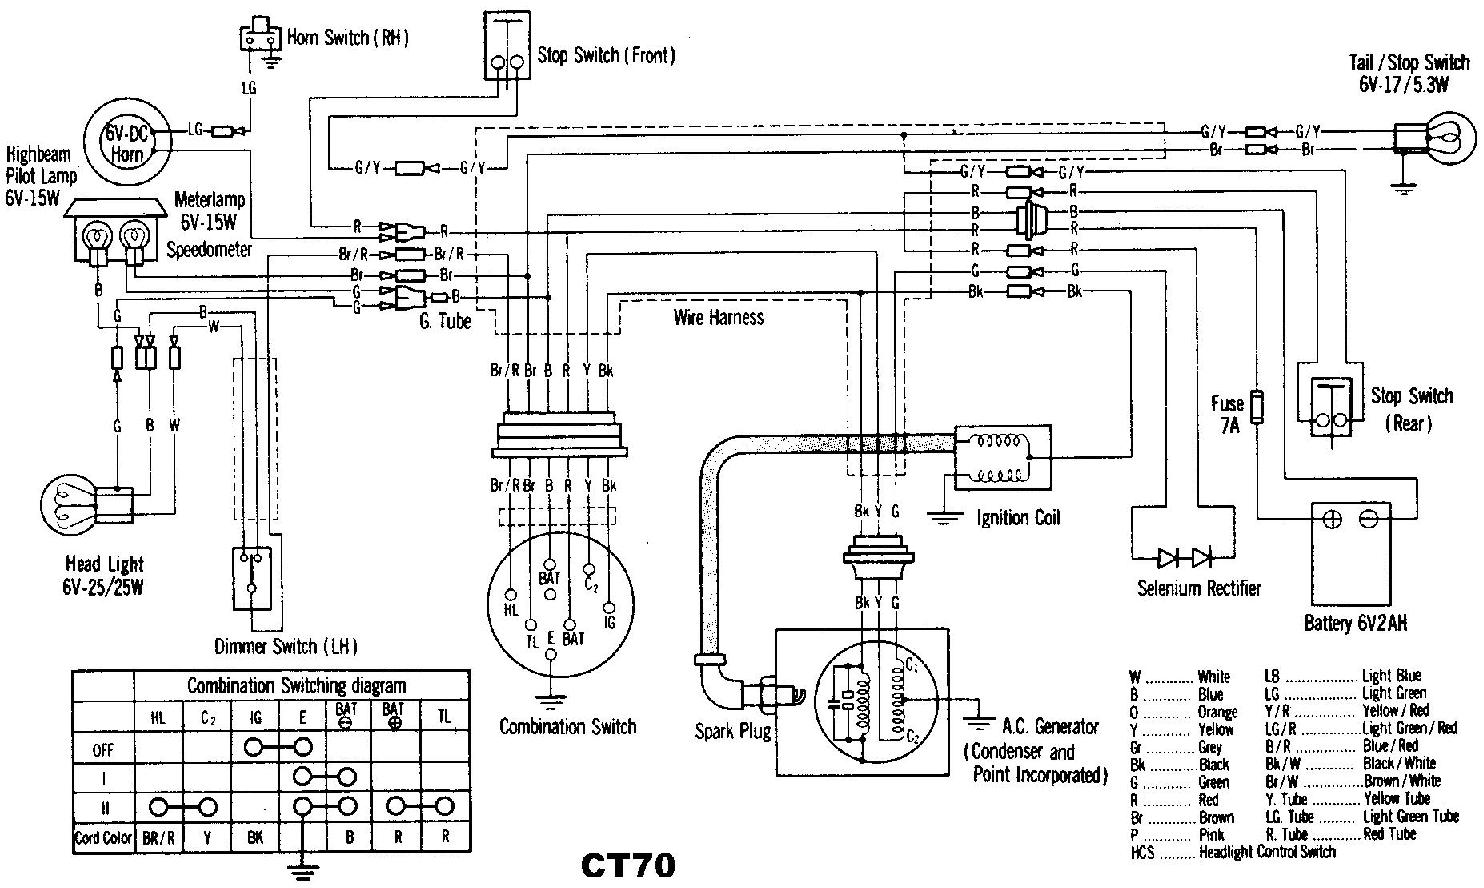 dratv_2269_123803613 diagram for honda c70 wiring wiring diagrams instruction c70 wiring diagram at soozxer.org